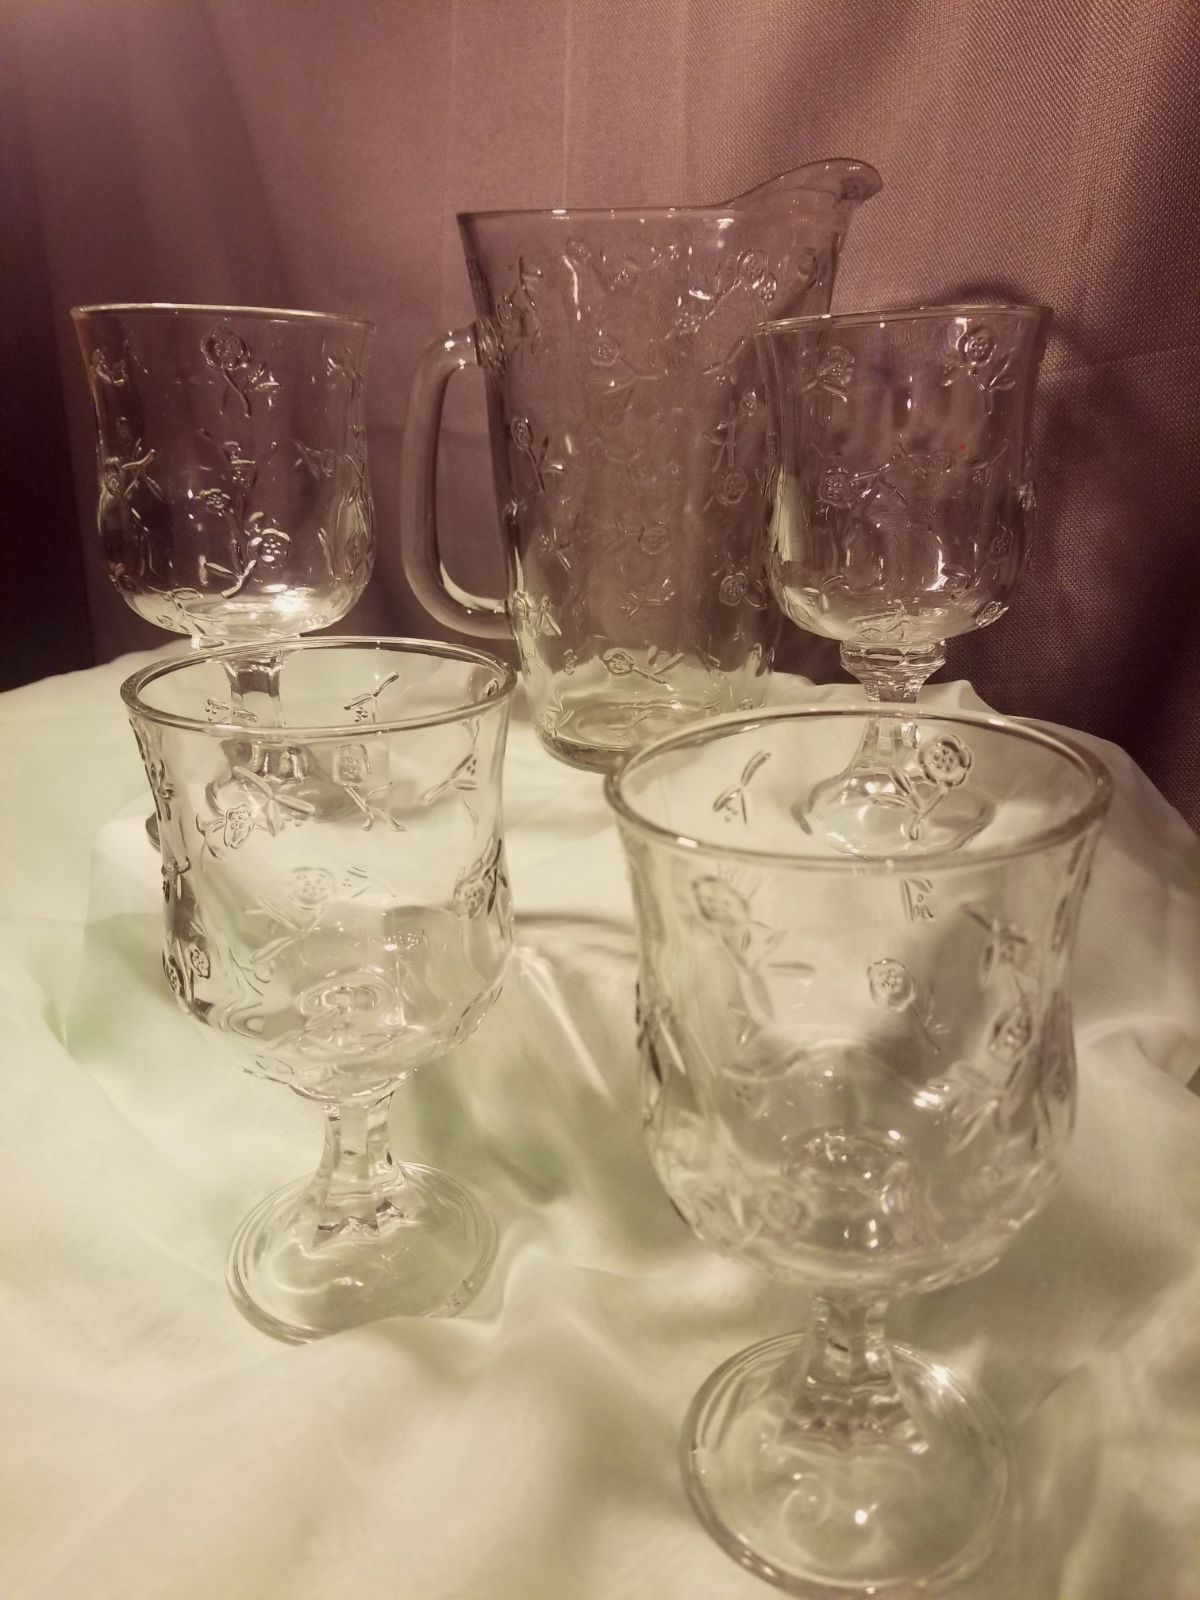 Etched Glass Pitcher and glasses